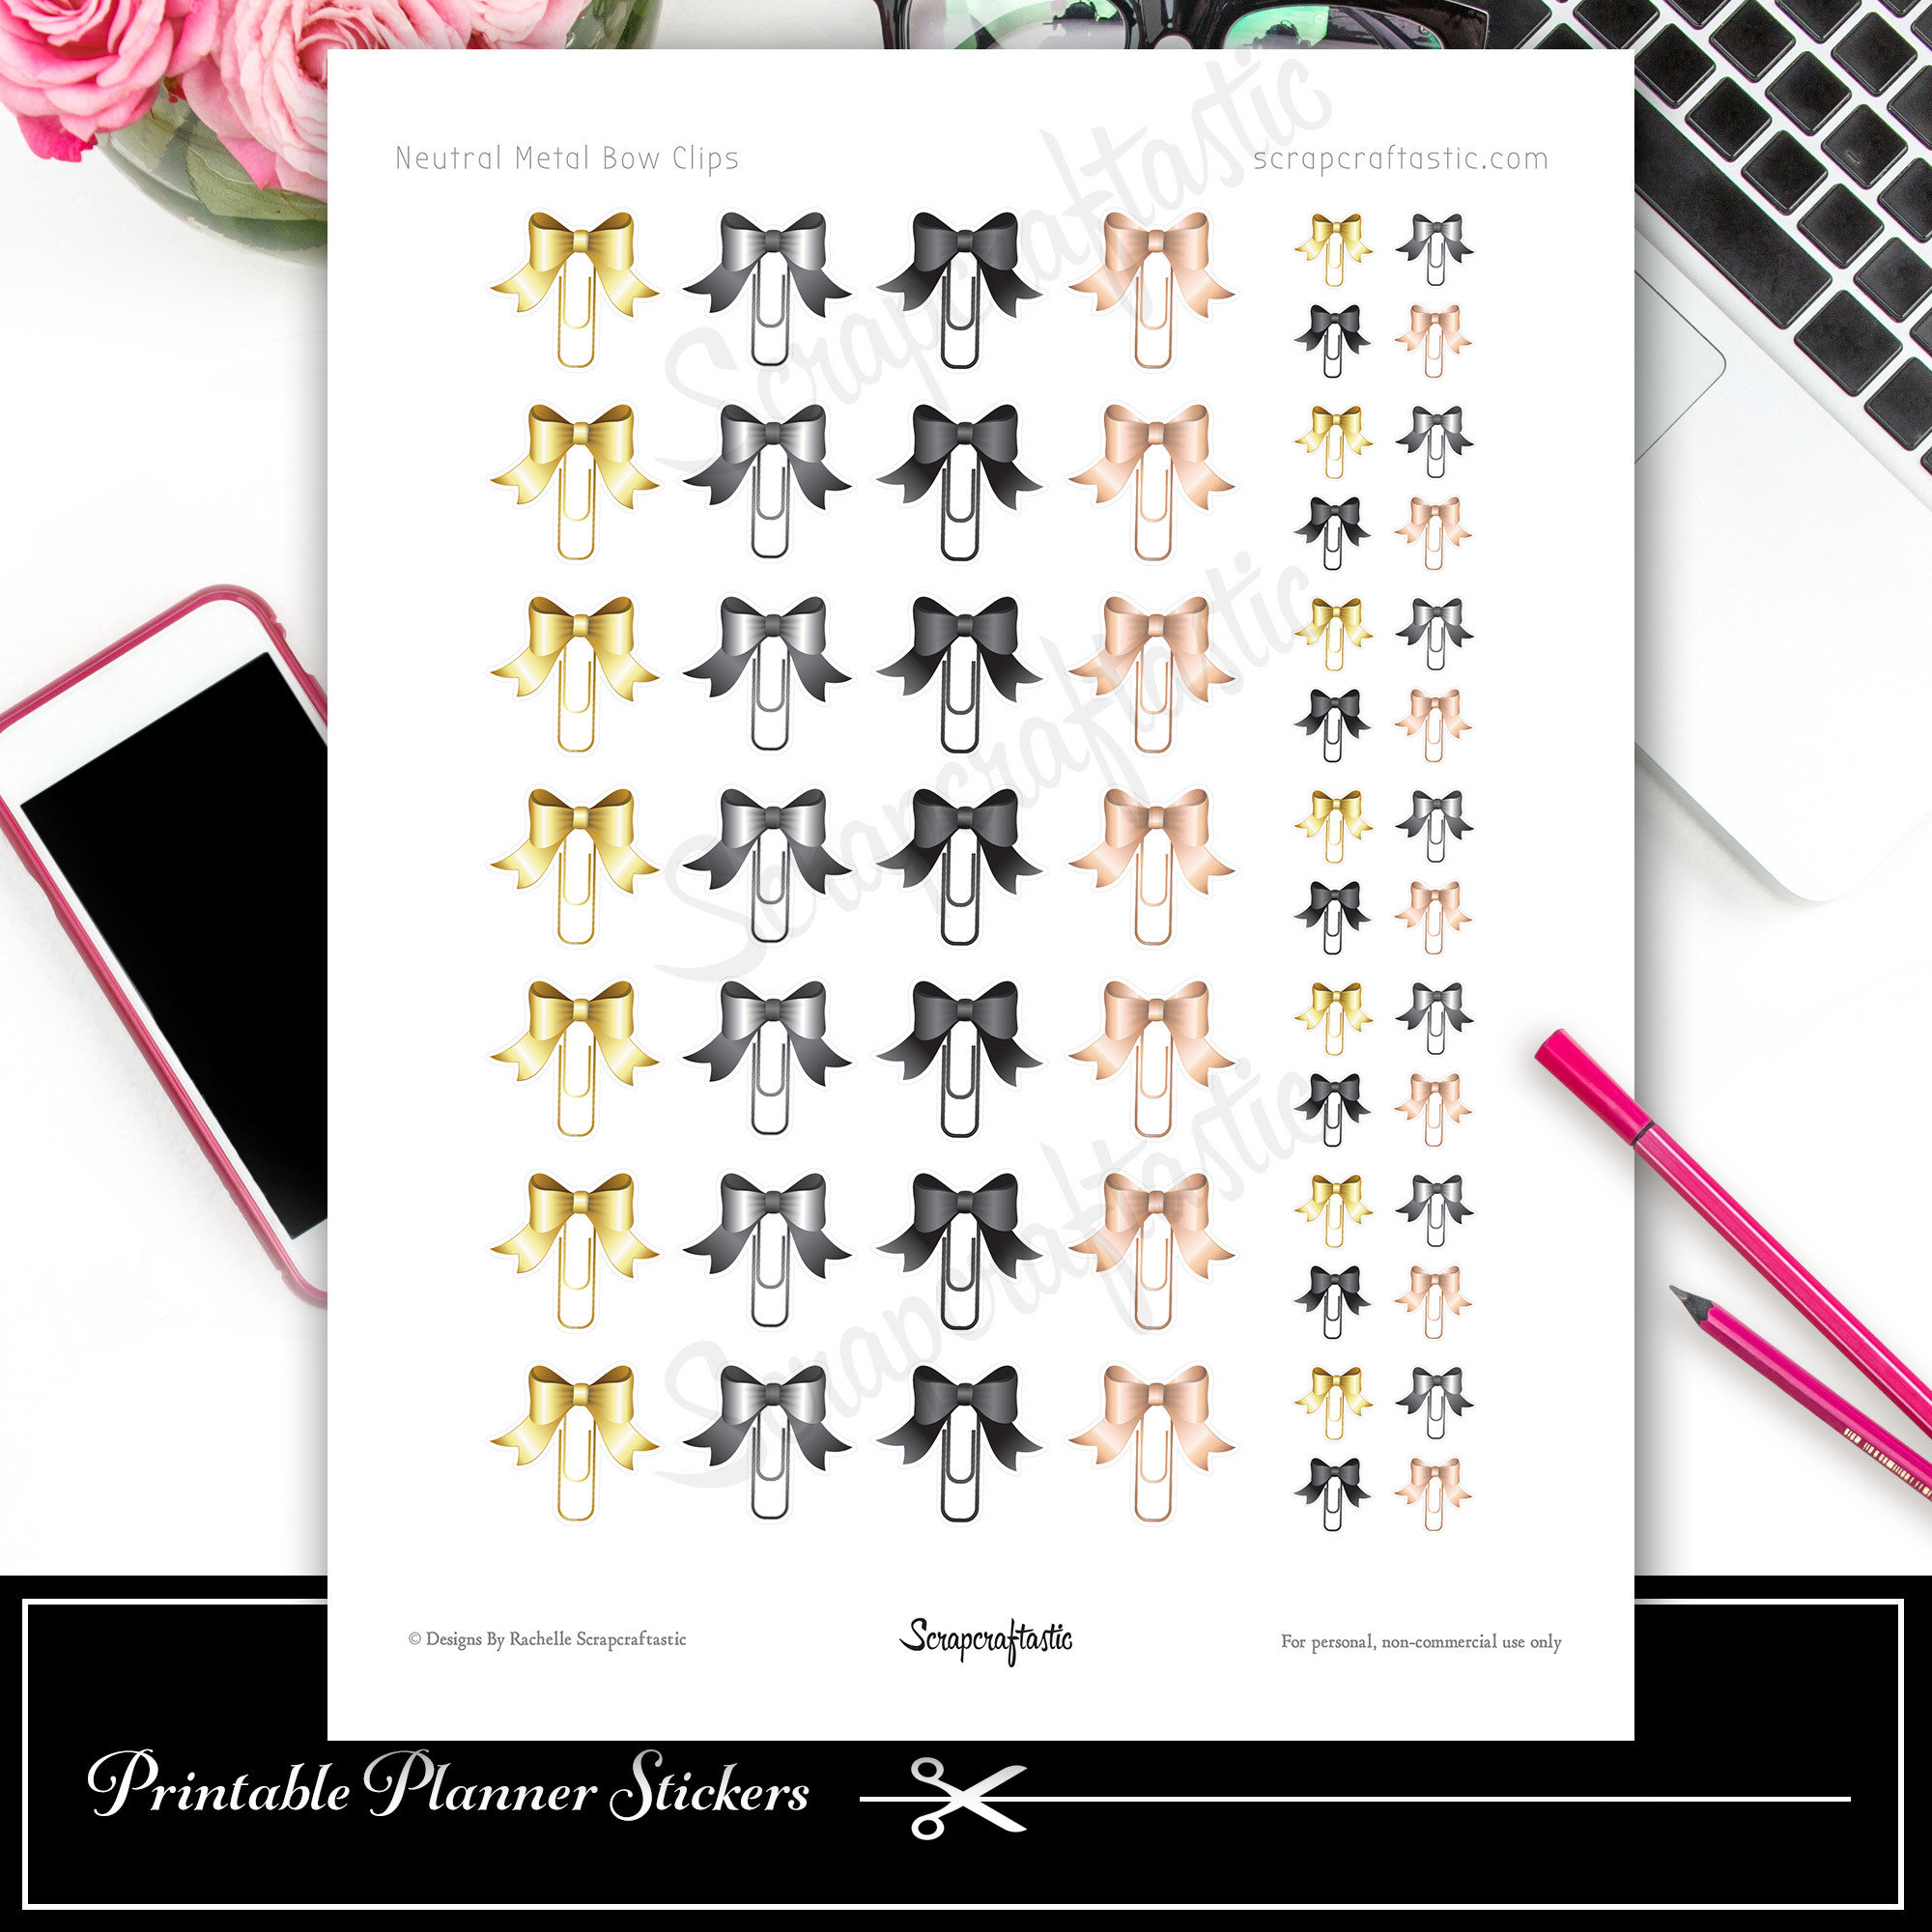 Neutral Metal Bow Clip Printable Planner Stickers for Traveler's Notebooks and Paper Planners, Agendas and Organizers 03018